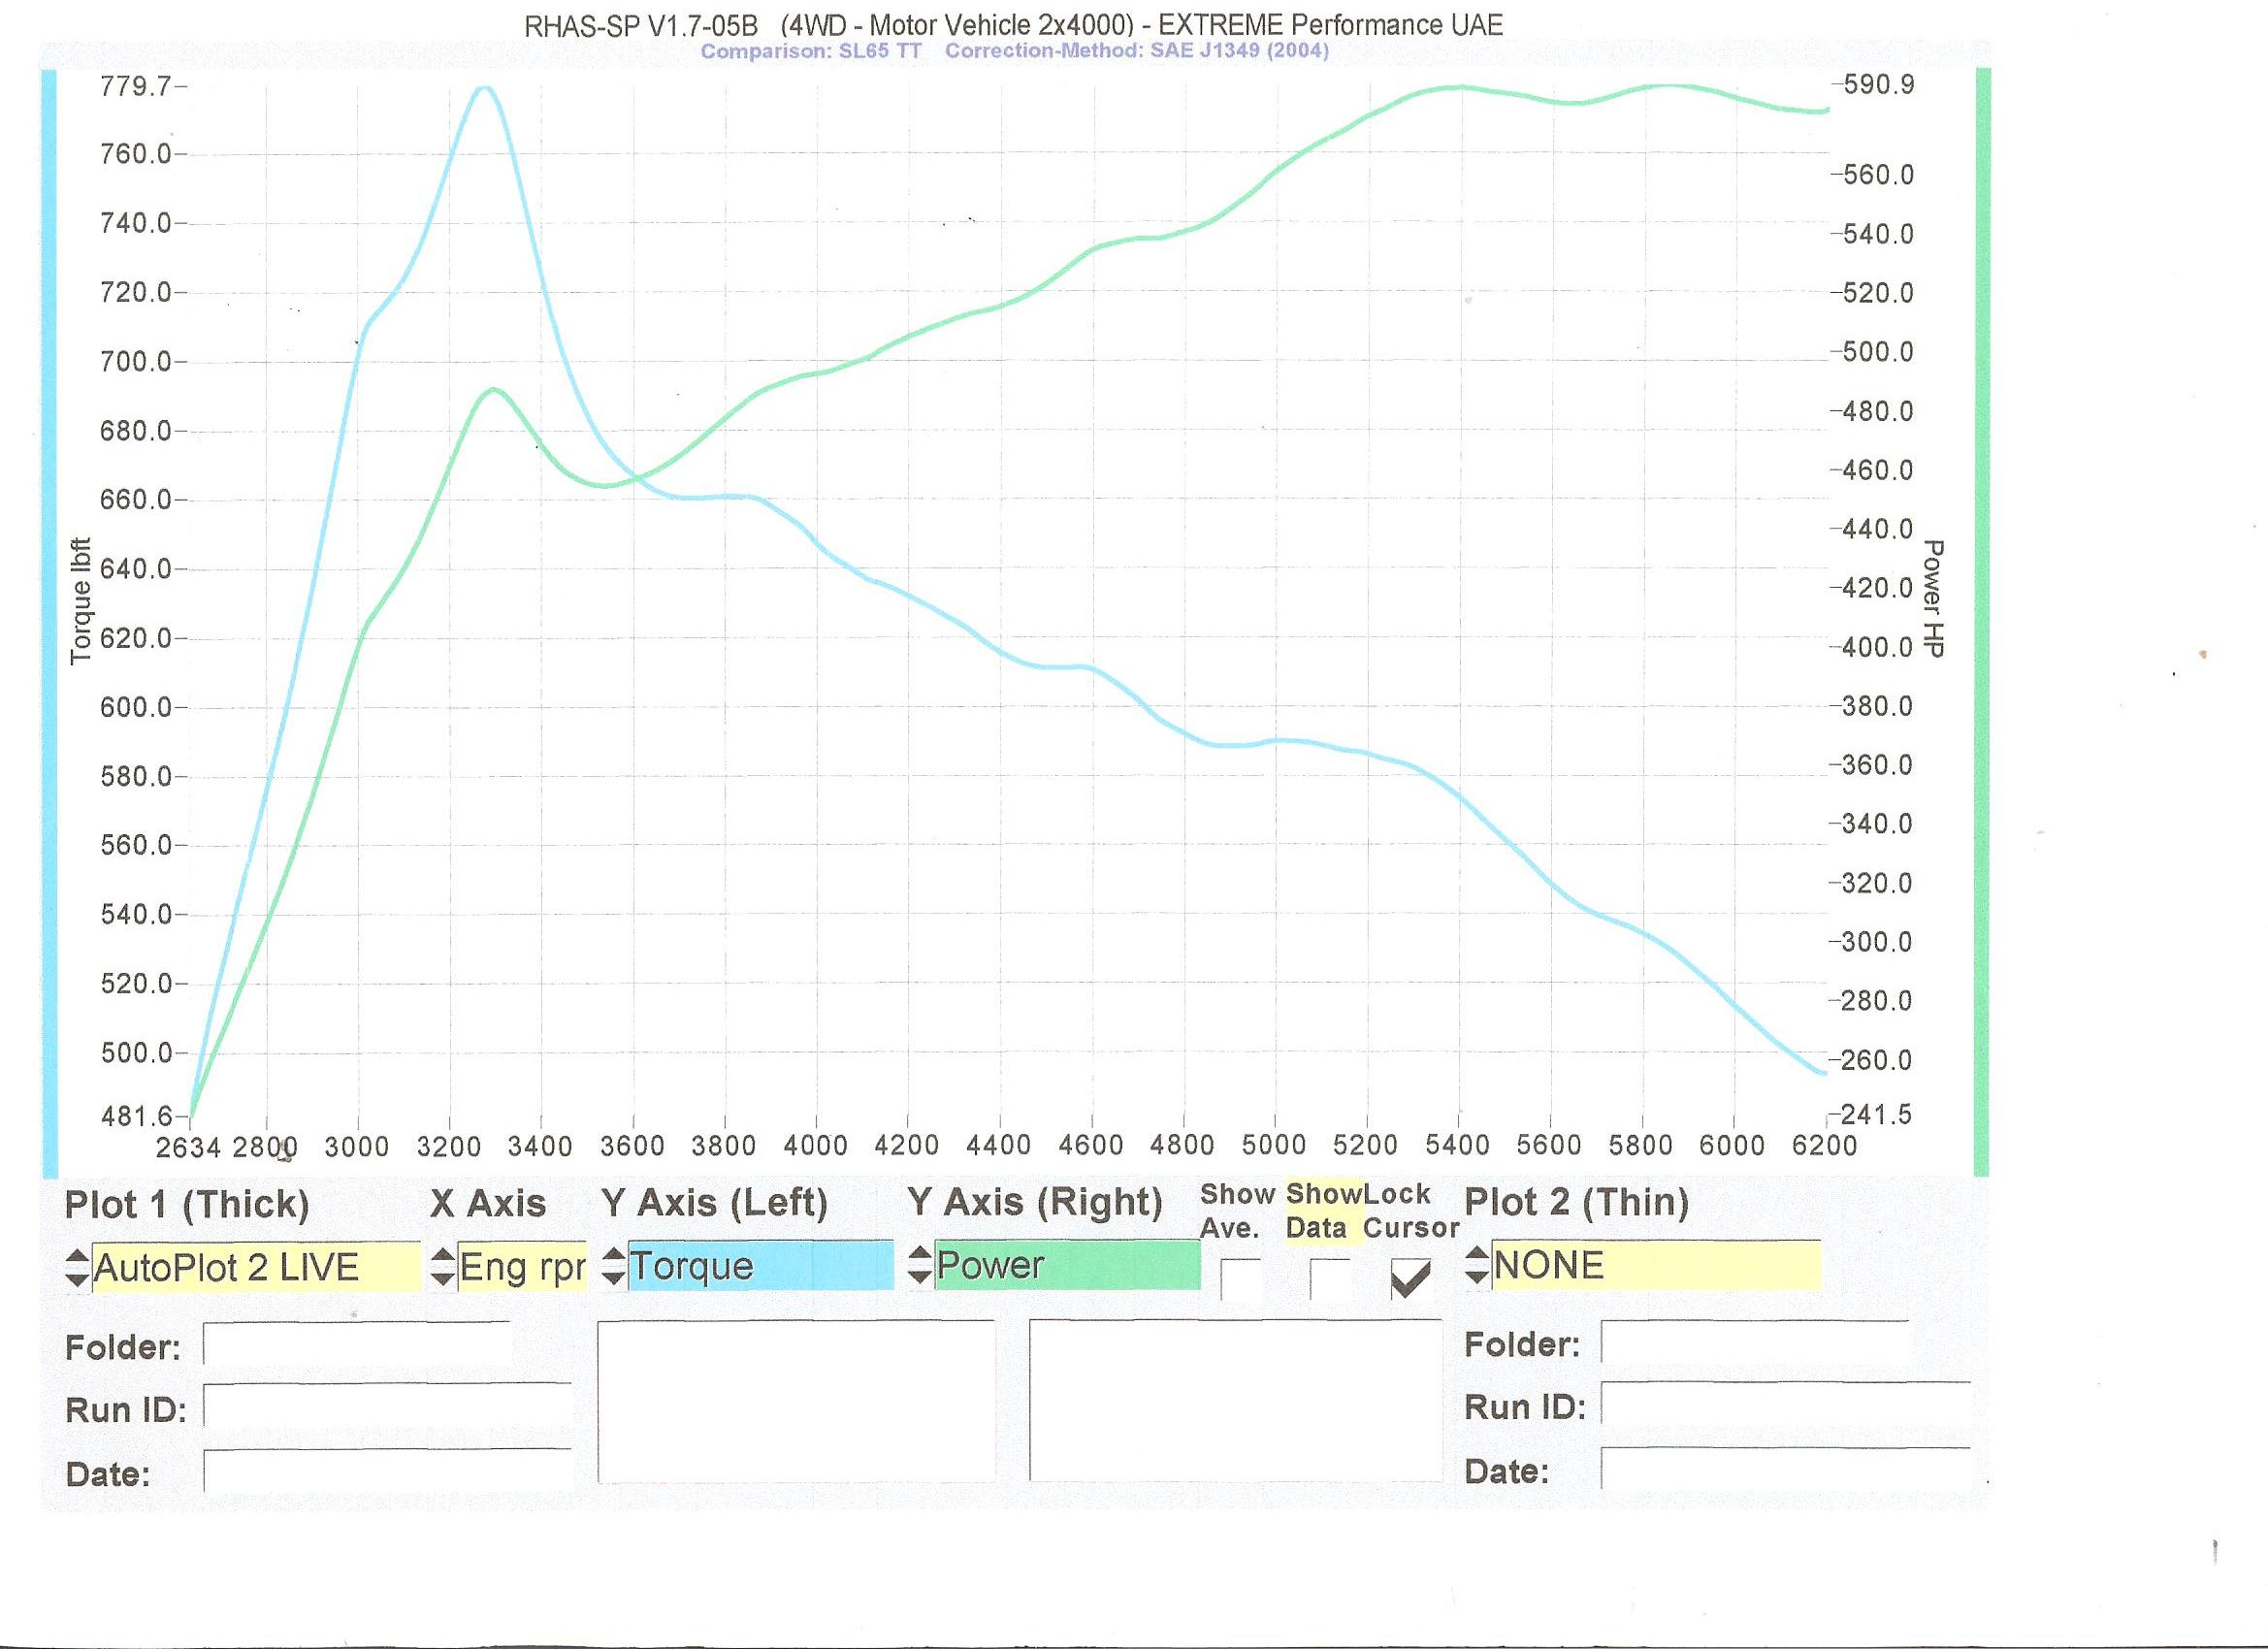 2009 Mercedes-Benz SL65 AMG RENN tech Dyno Results Graph